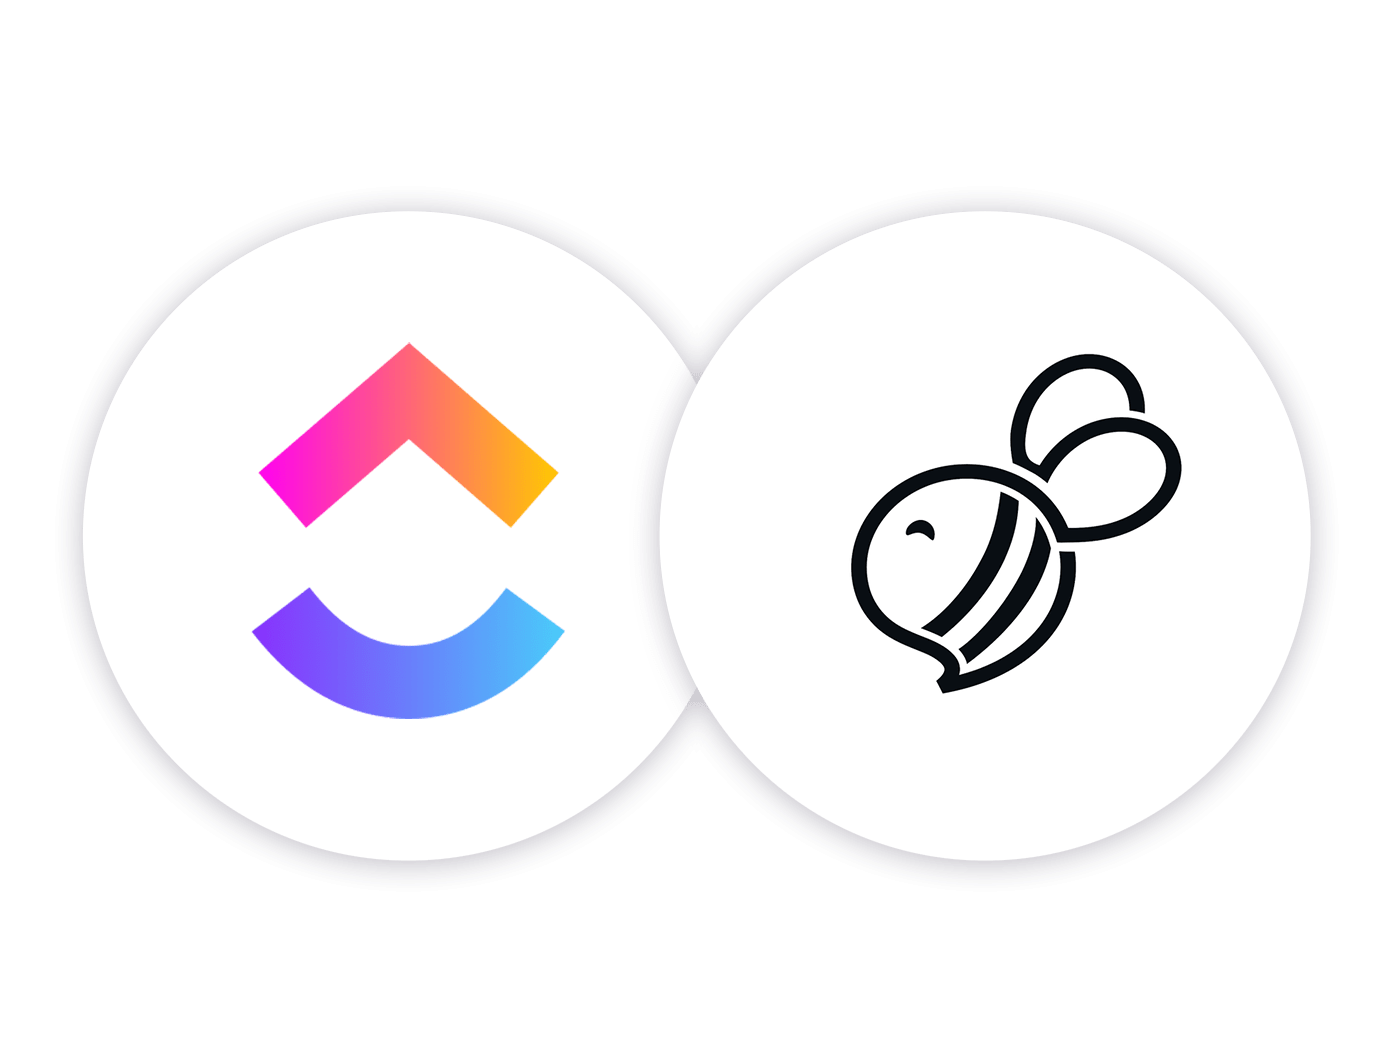 ClickUp logo and Support bee logo